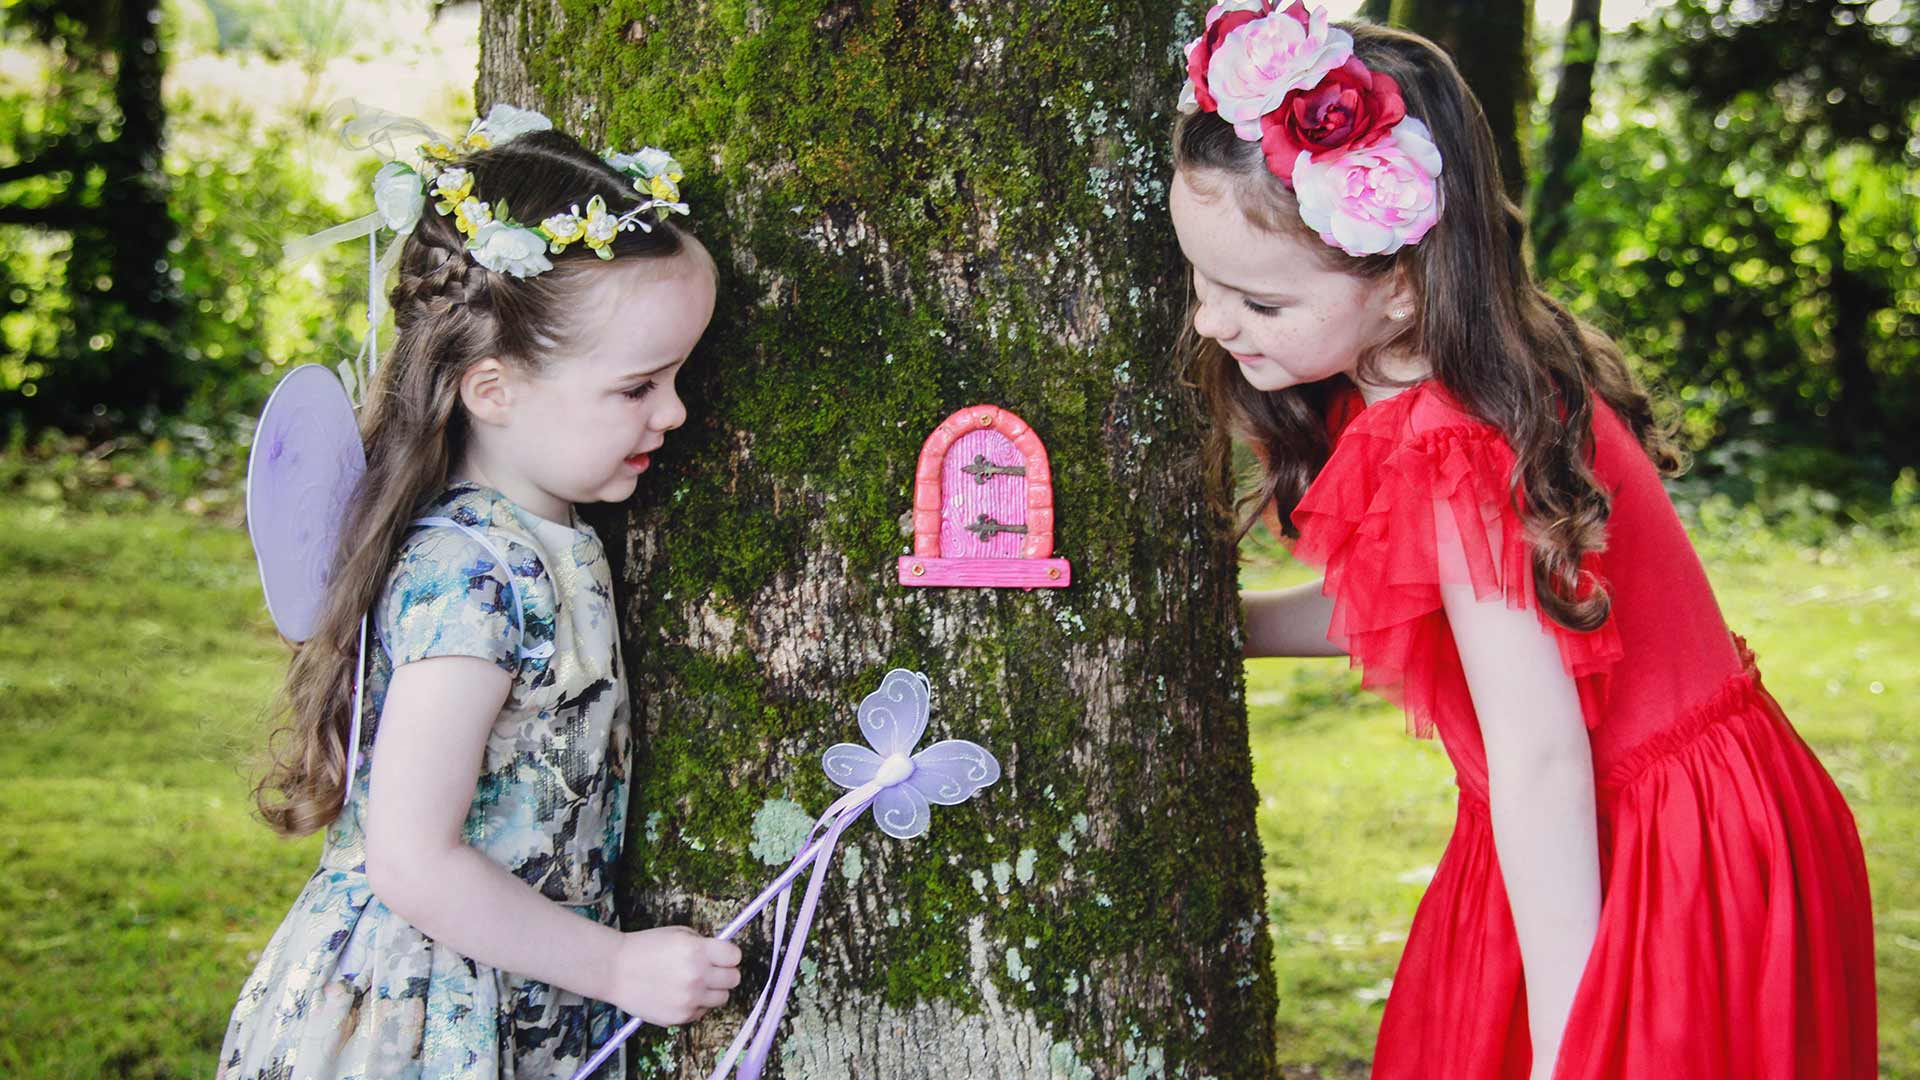 Gnome In Garden: Hotels With Kids Club